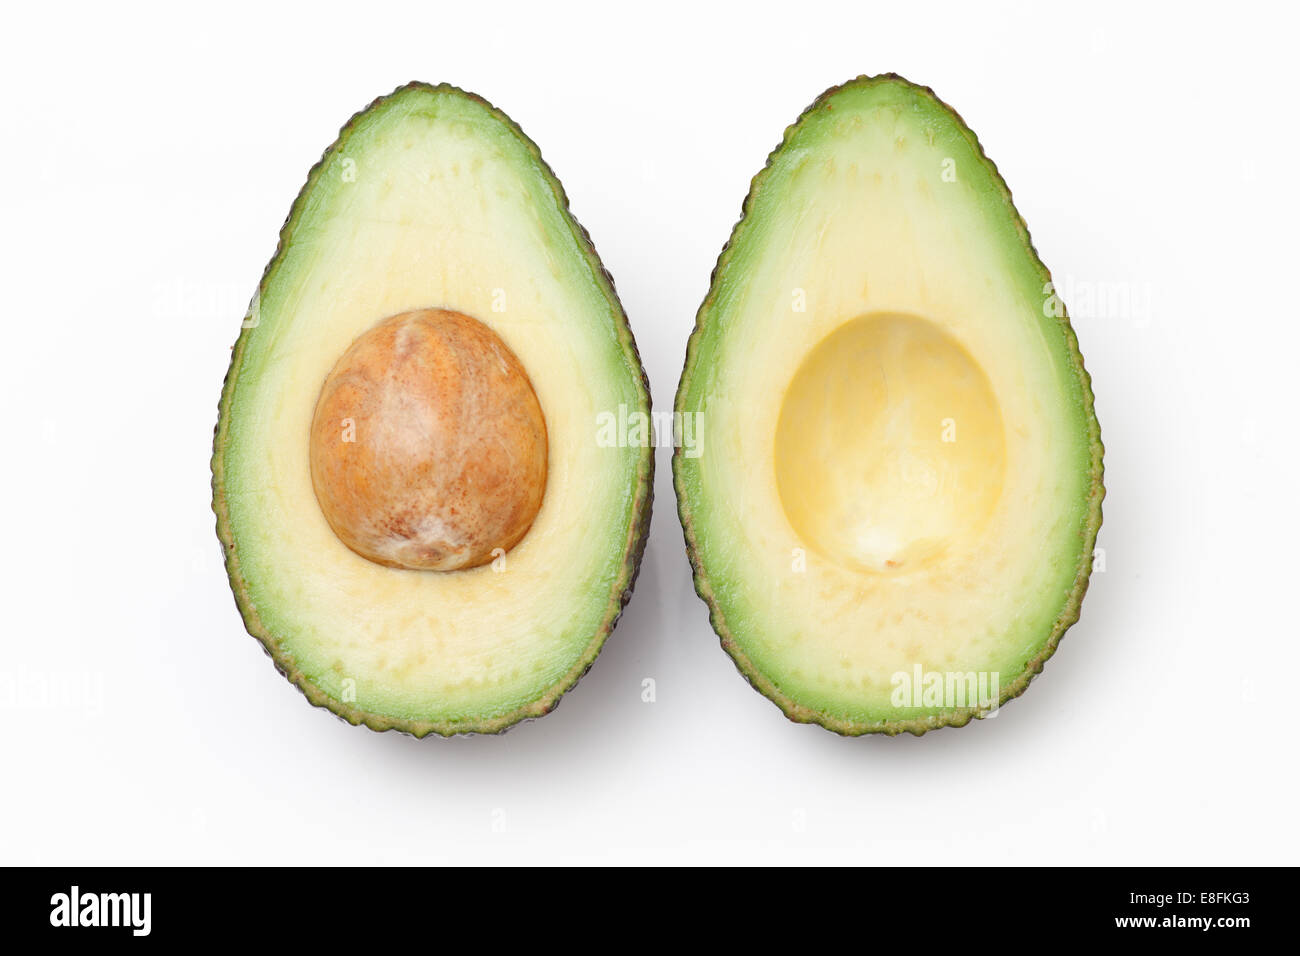 close up of an avocado cut in half stock photo 74103347 alamy